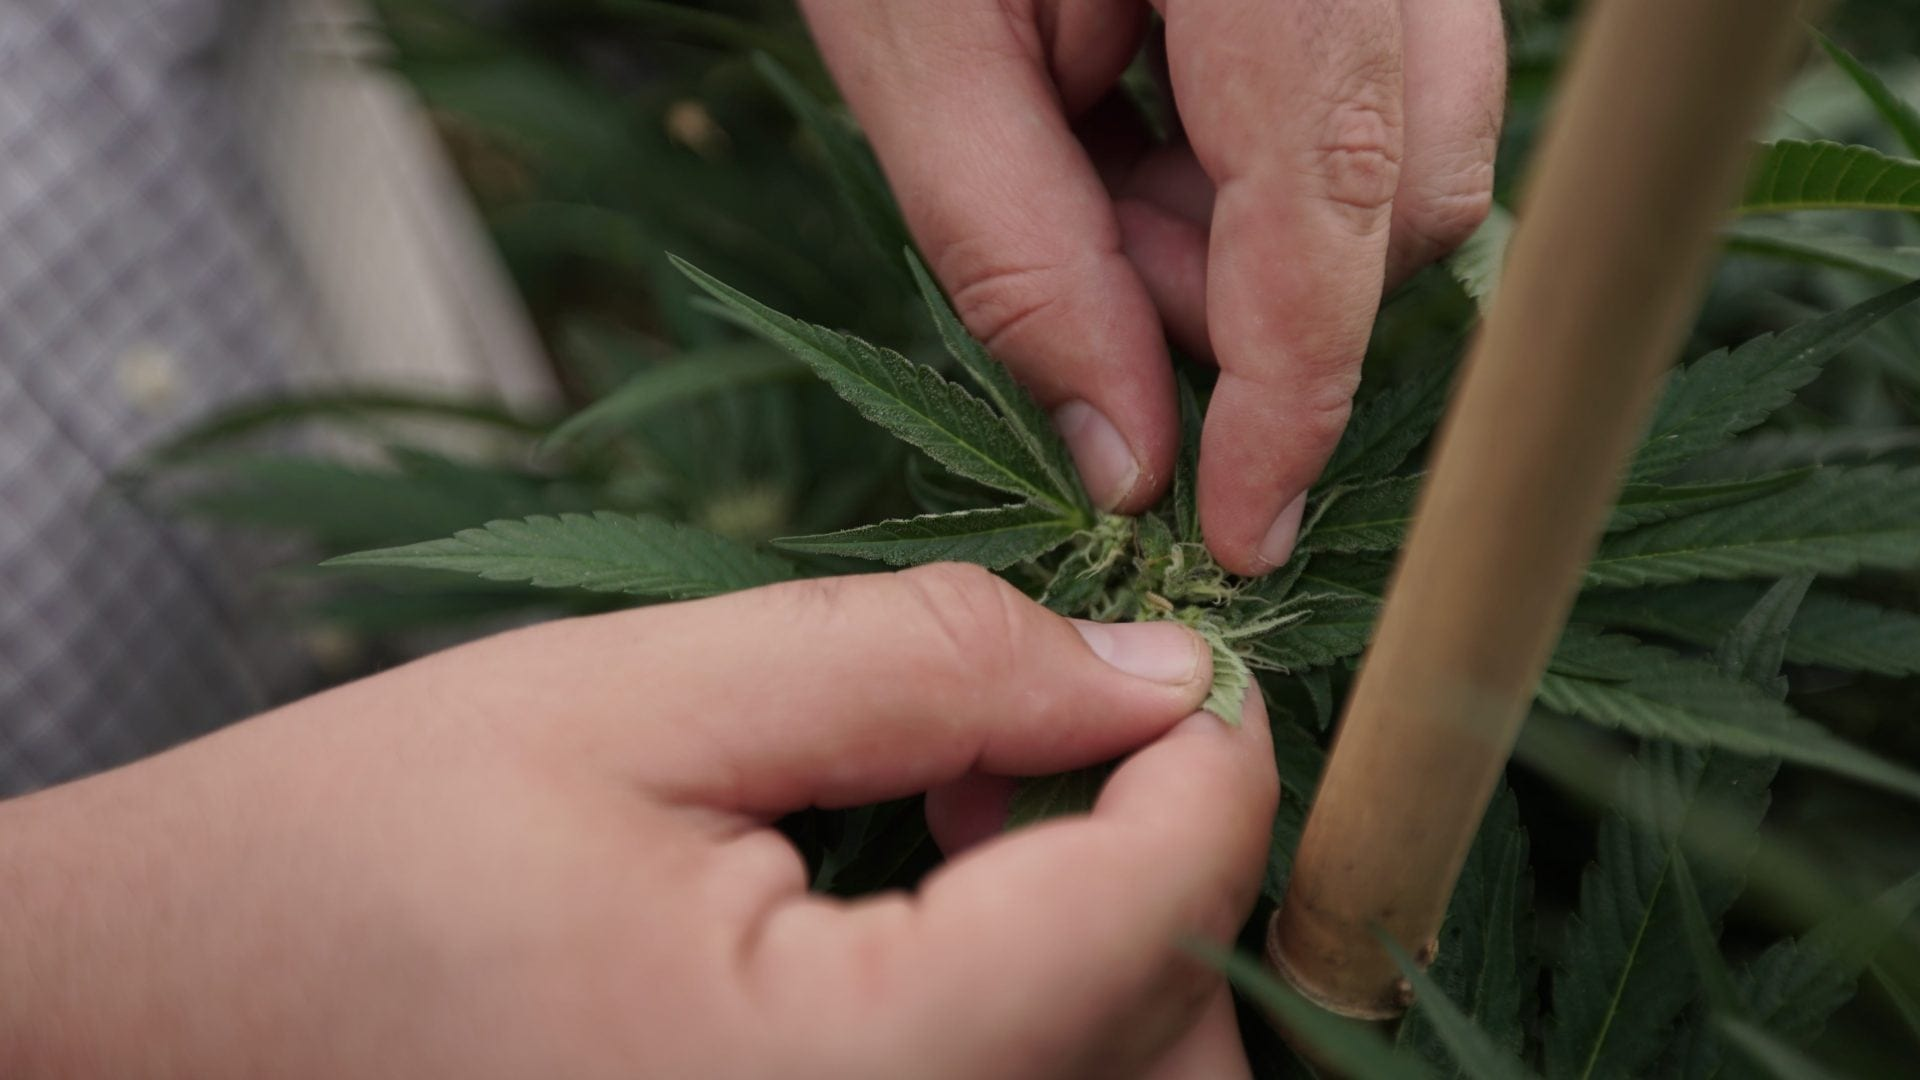 Here Are The DEA's Newest Slang Terms for Marijuana: 'Shoes,' 'My Brother' And More